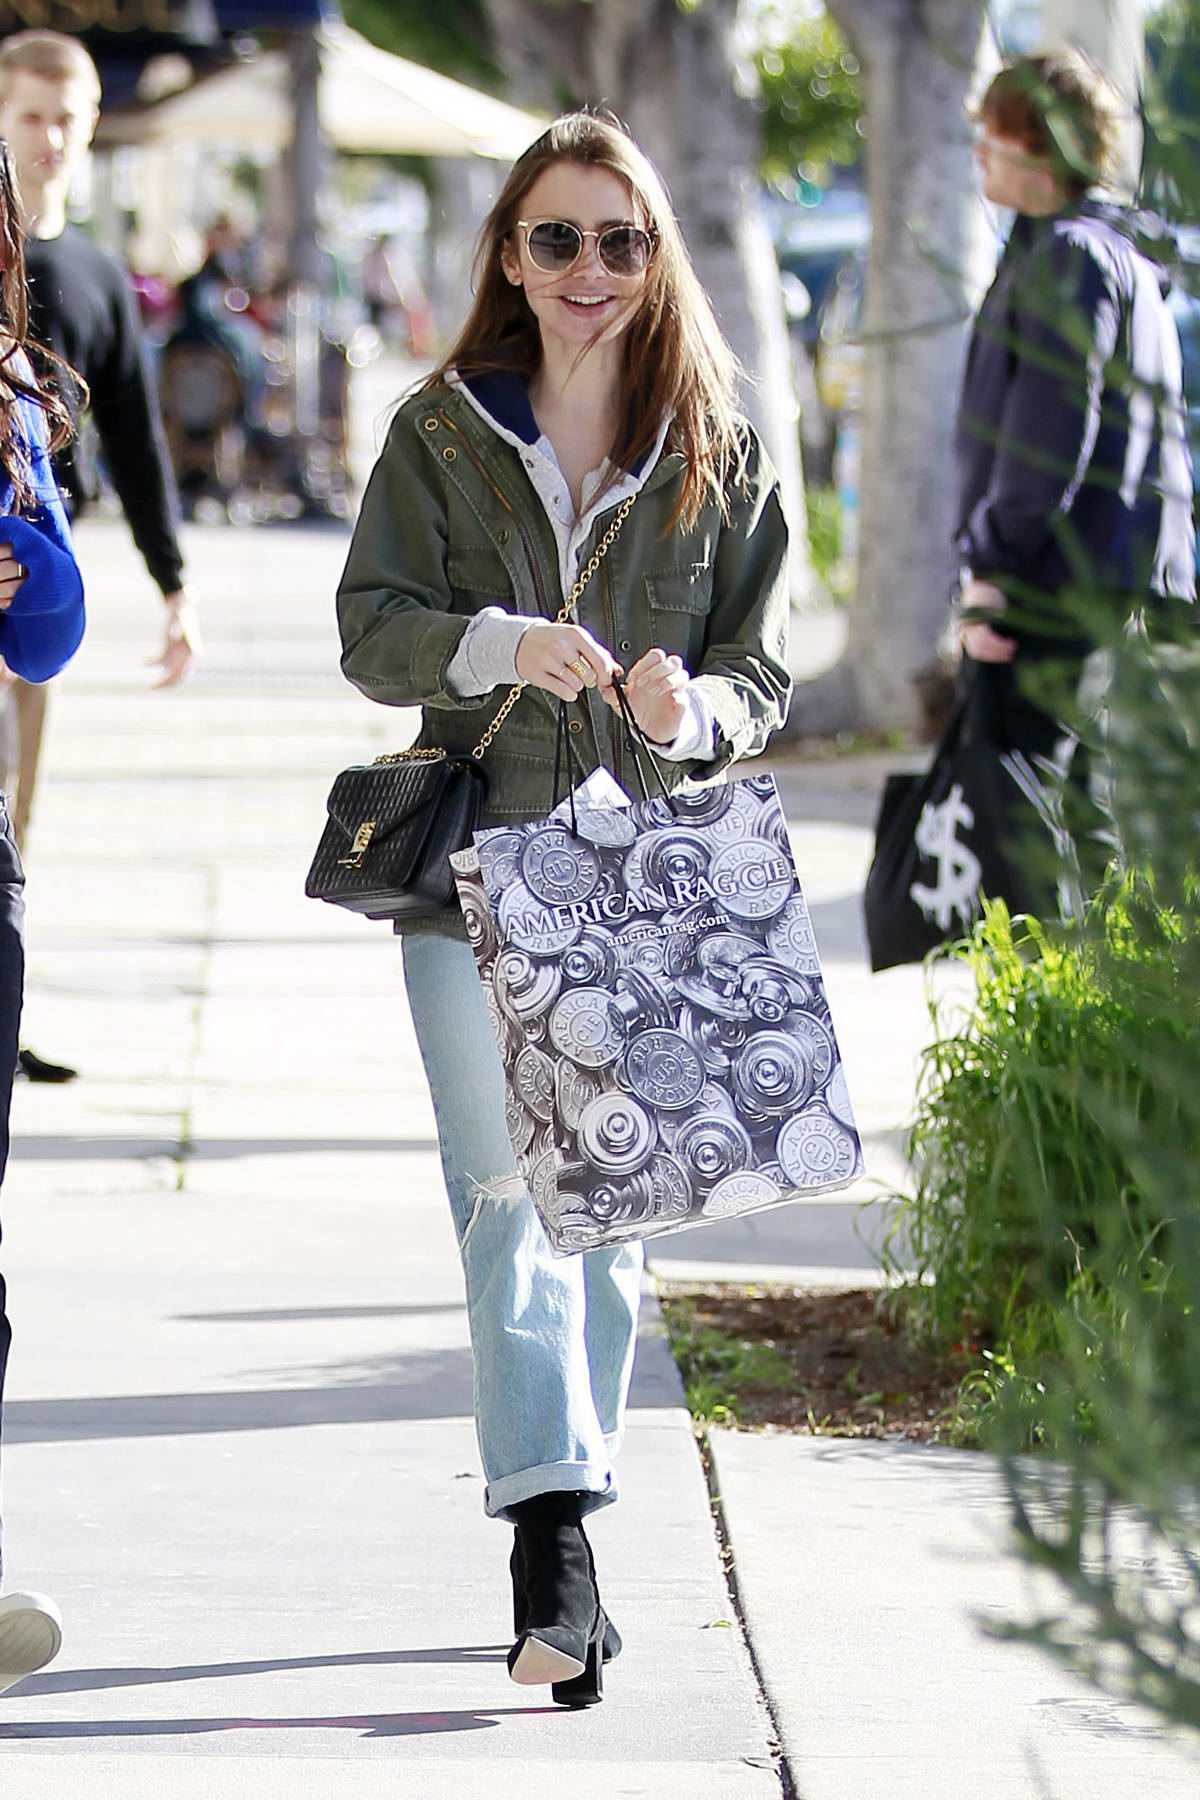 Lily Collins enjoys some retail therapy with a friend at American Rag in West Hollywood, Los Angeles